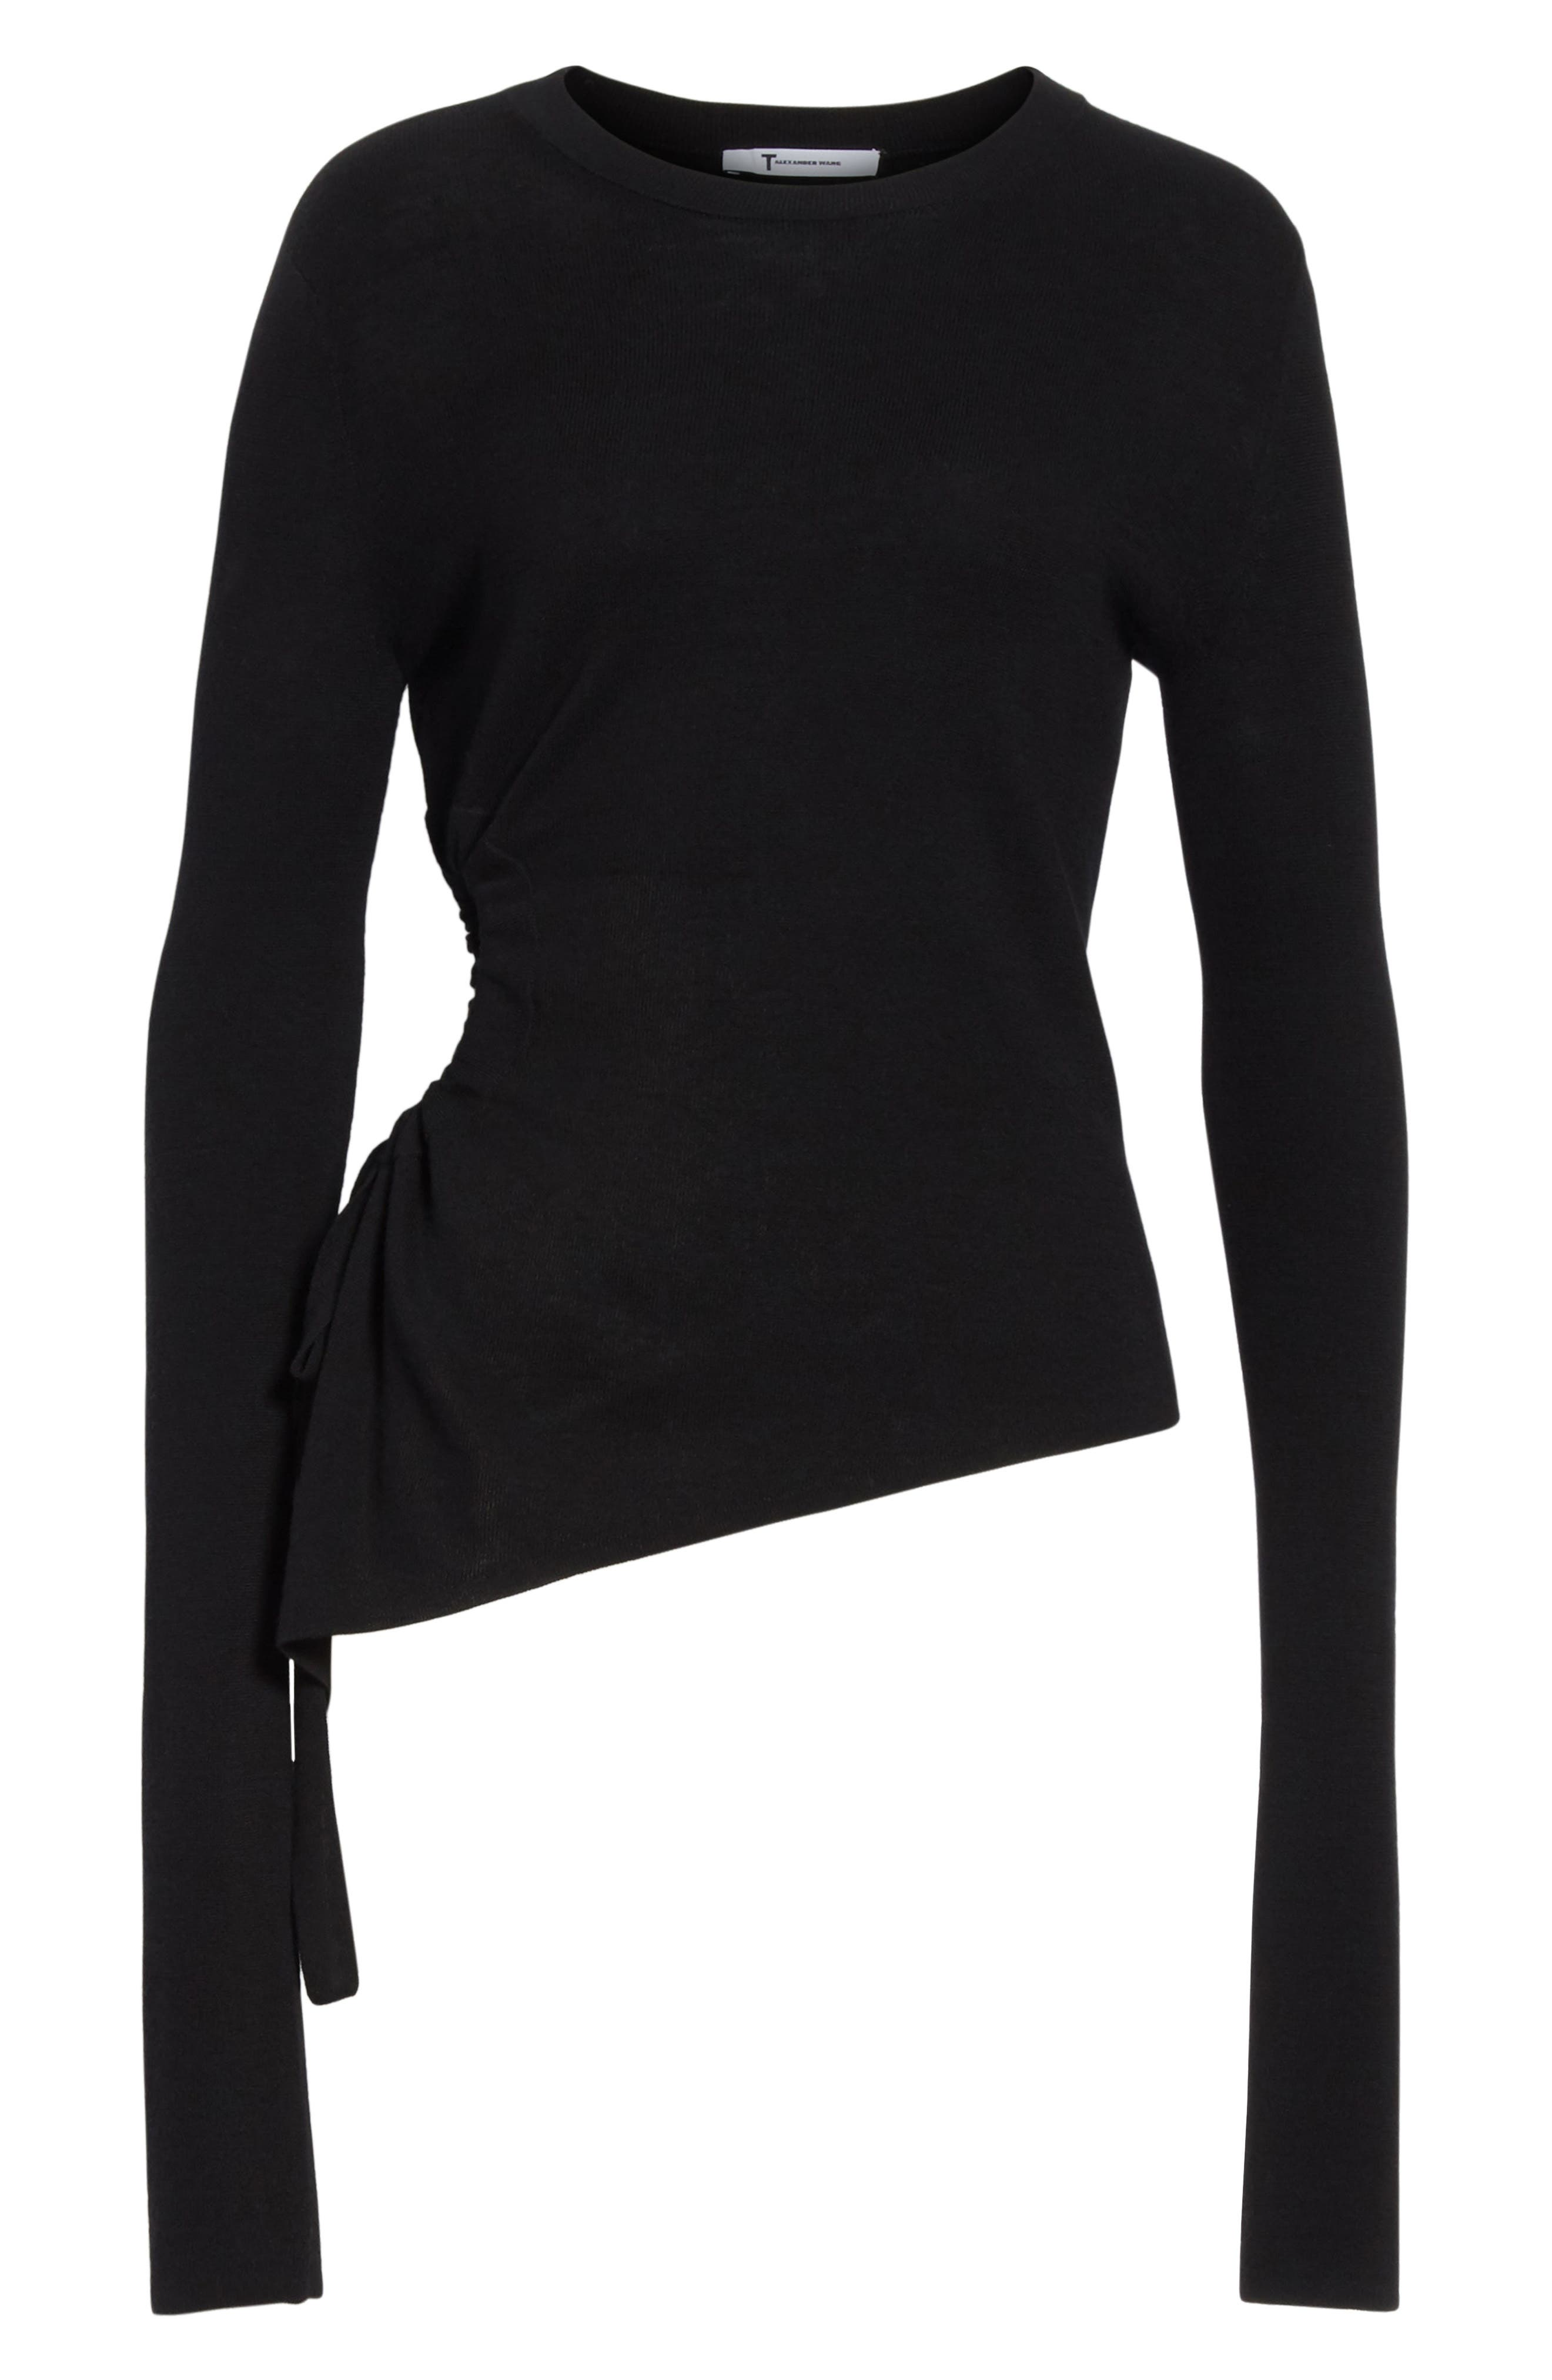 T by Alexander Side Cutout Ruched Merino Wool Sweater,                             Alternate thumbnail 6, color,                             Black